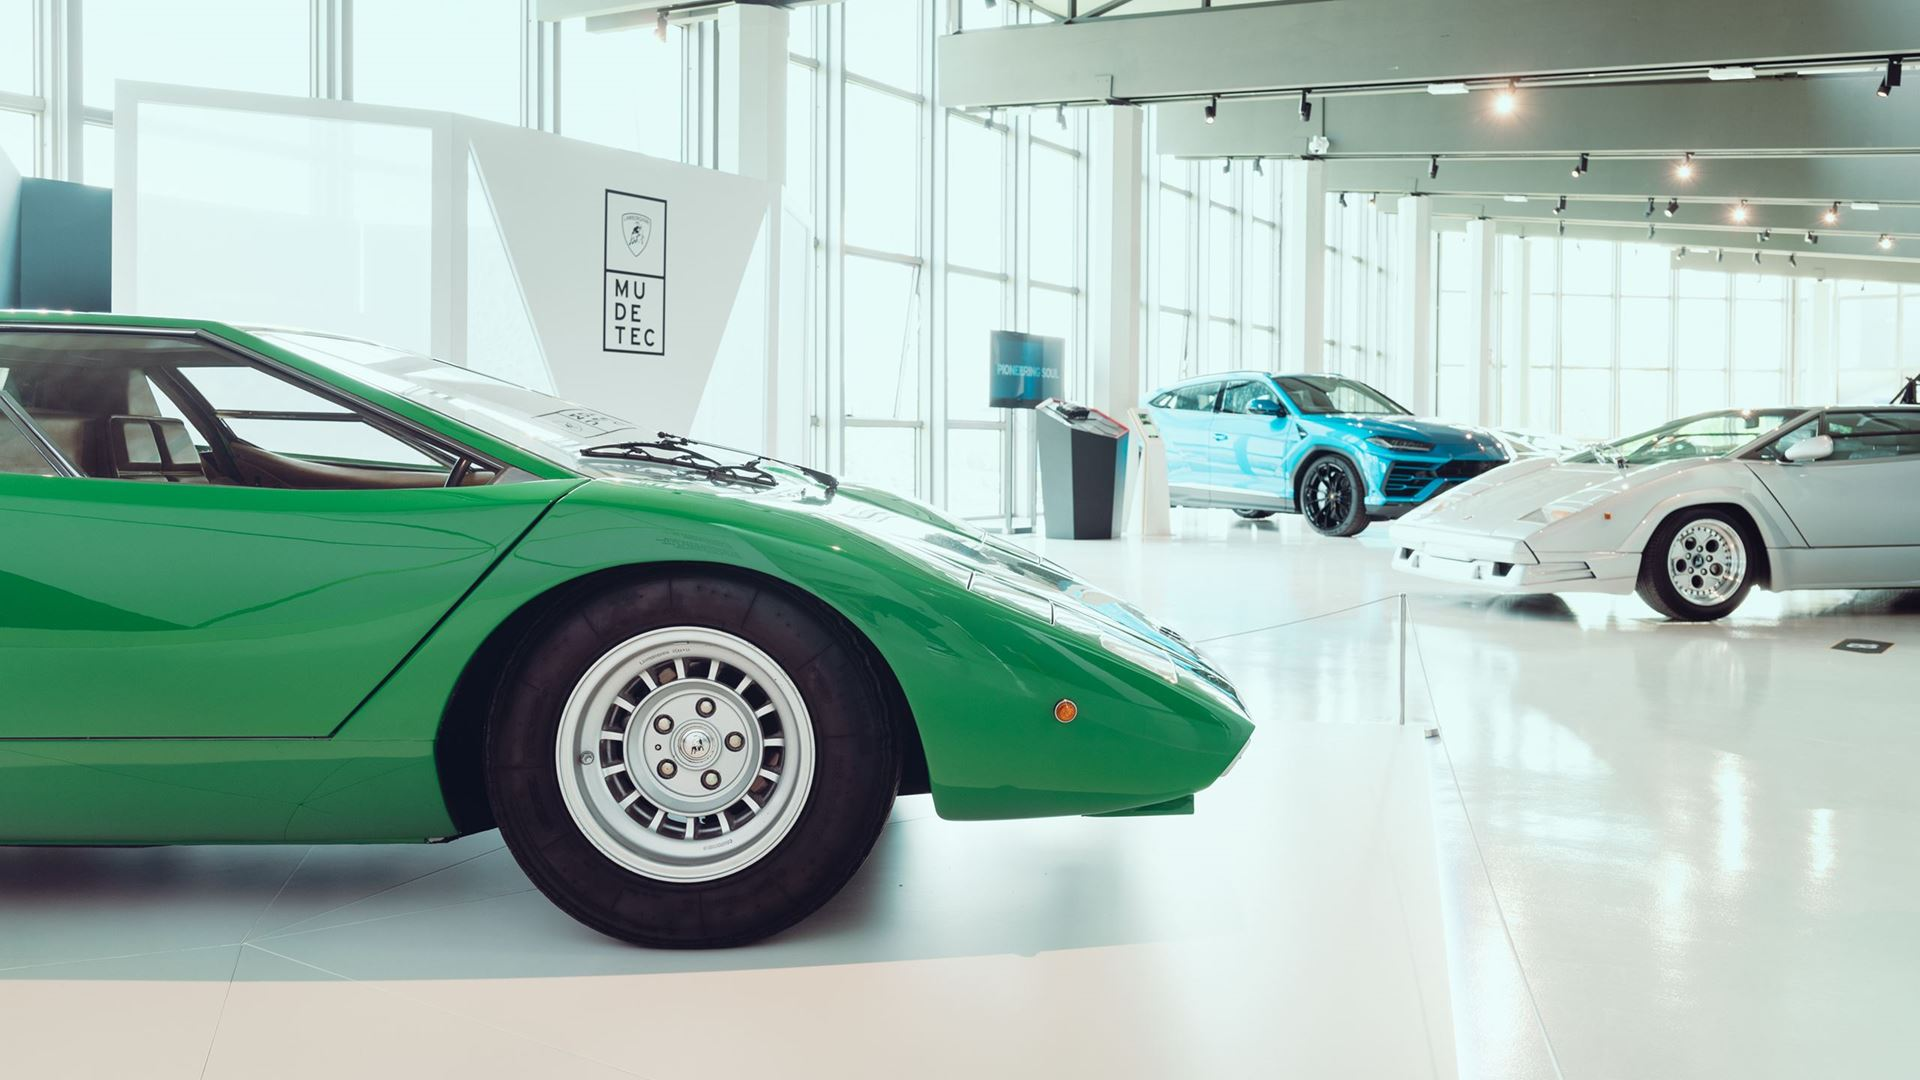 Automobili Lamborghini: The MUDETEC reopens its doors with a new exhibition around innovation and tradition - Image 1